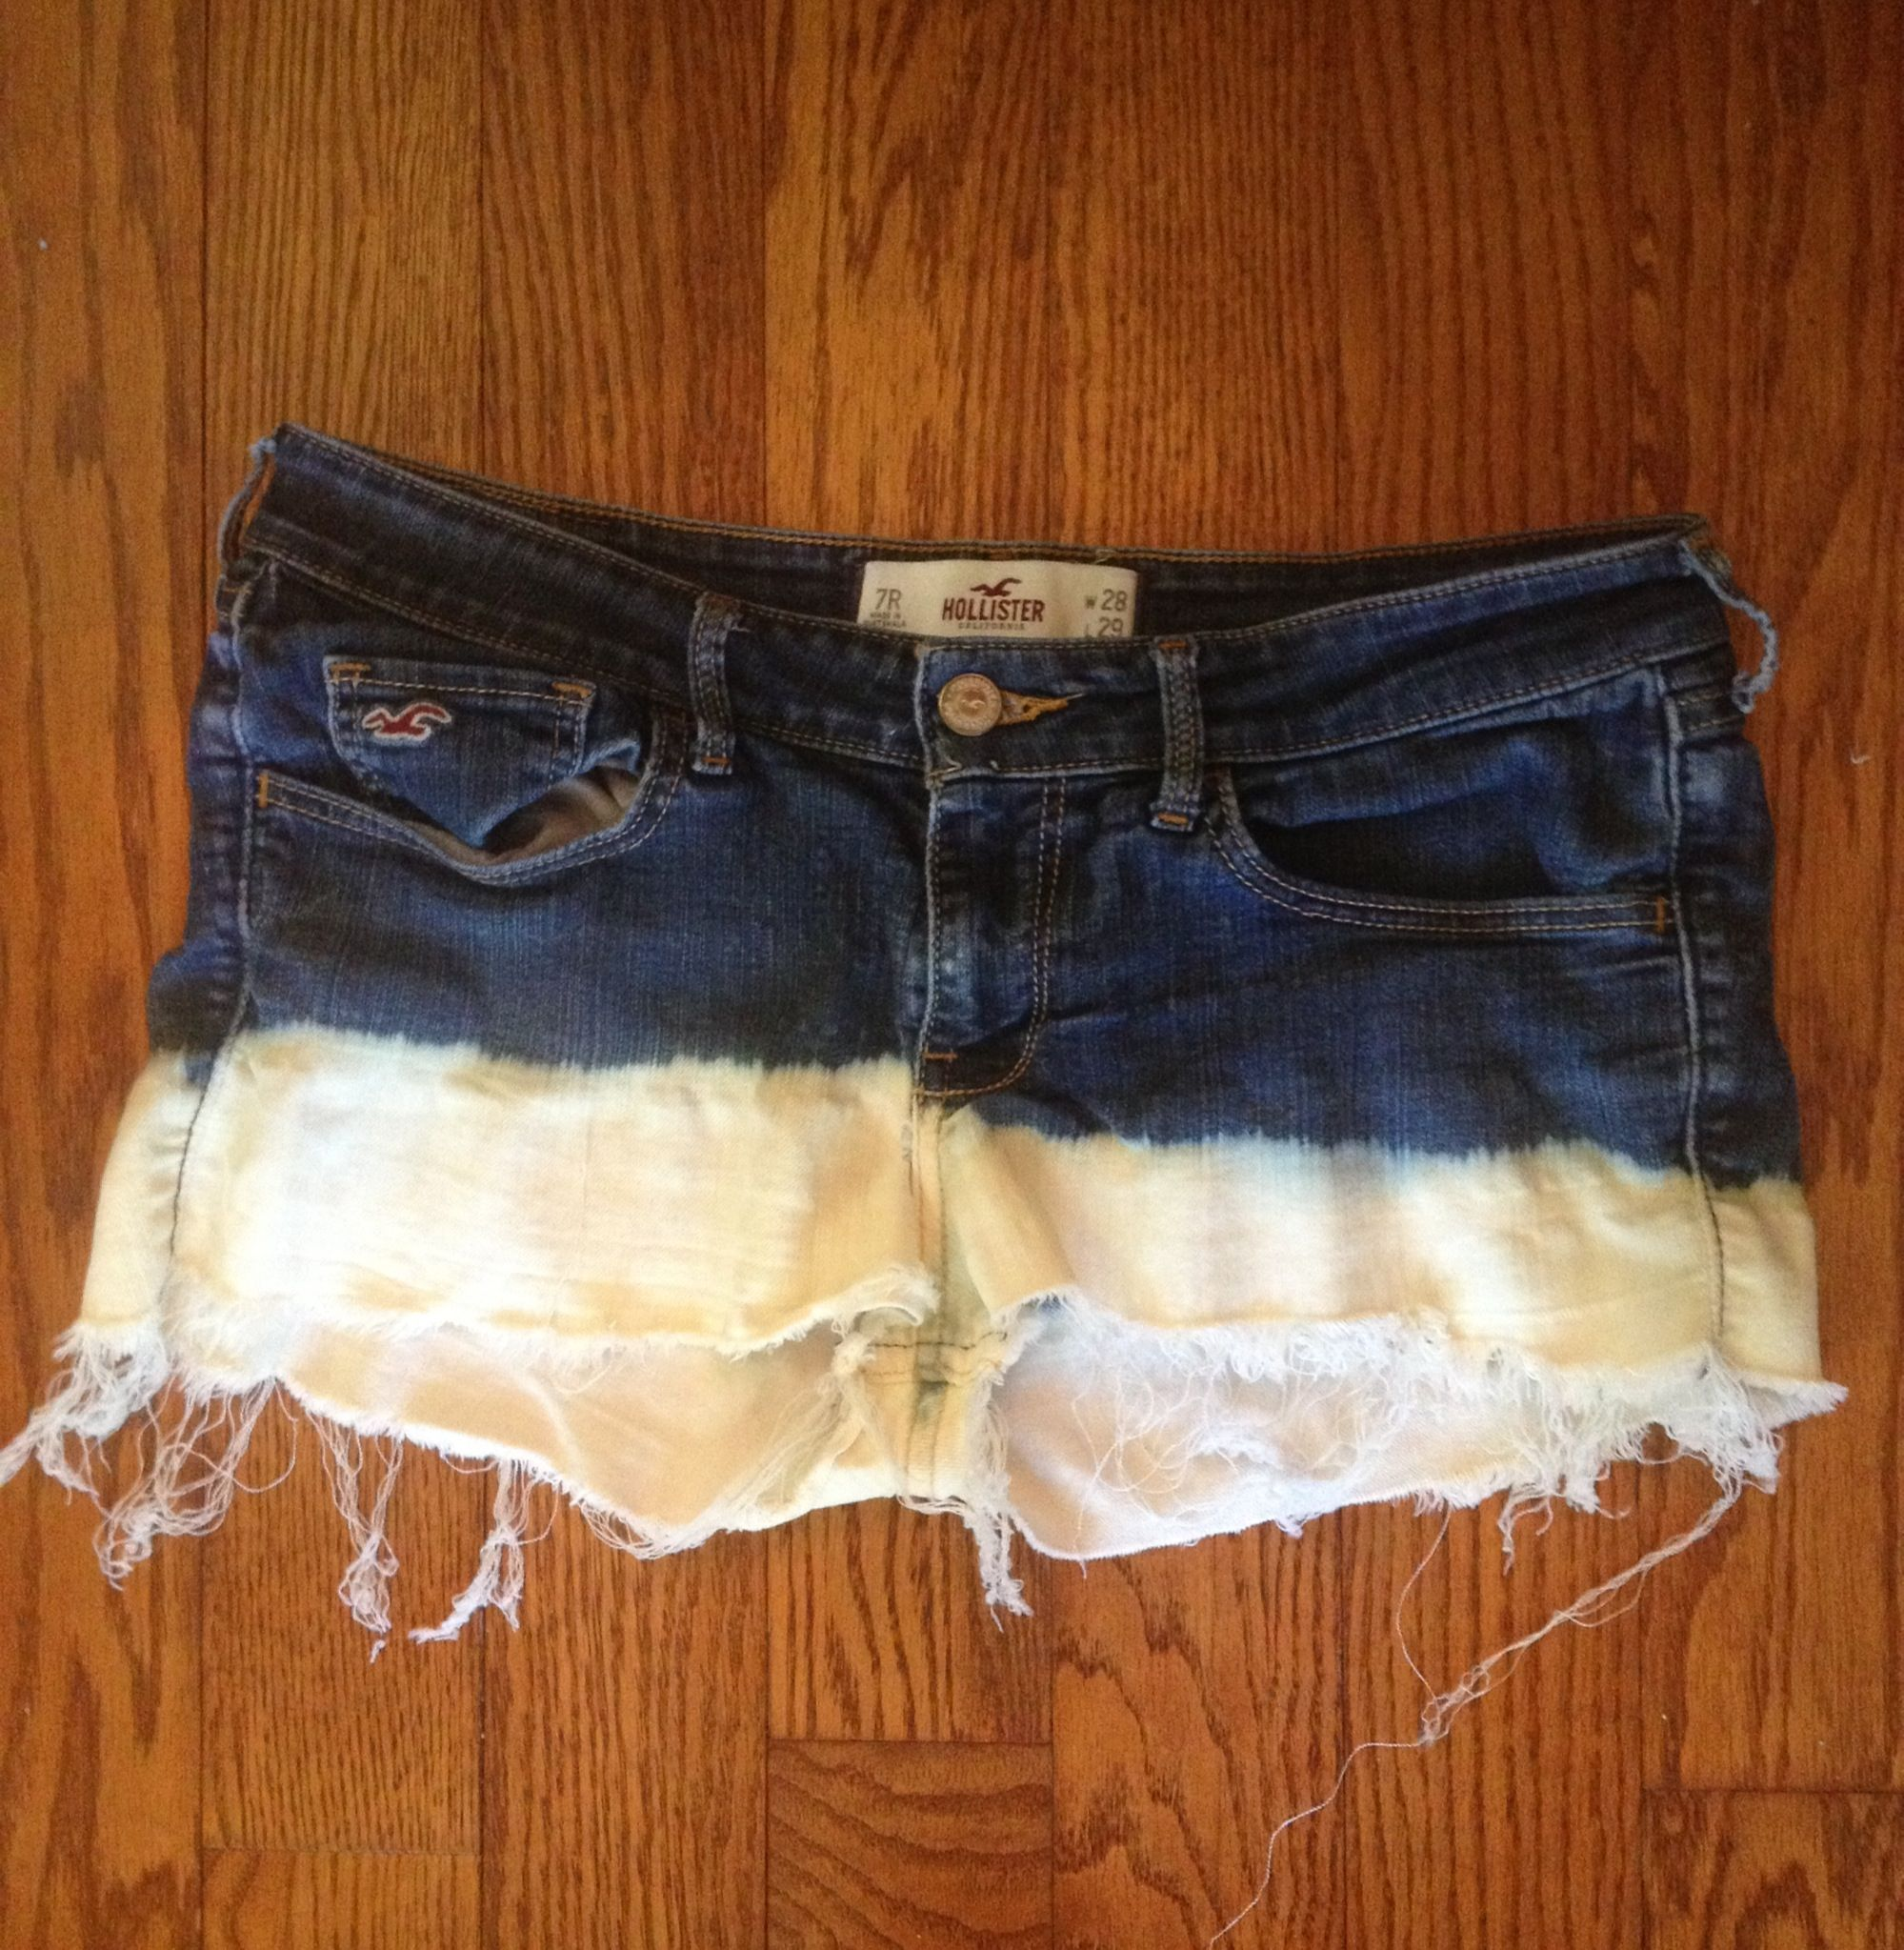 DIY dip dye shorts:  1. Find a old pair of jeans and cut them into shorts. 2. Get a bucket or tub and put bleach in it. 3. Dip the ends of the shorts into the bleach. 4. Let it dry then enjoy!